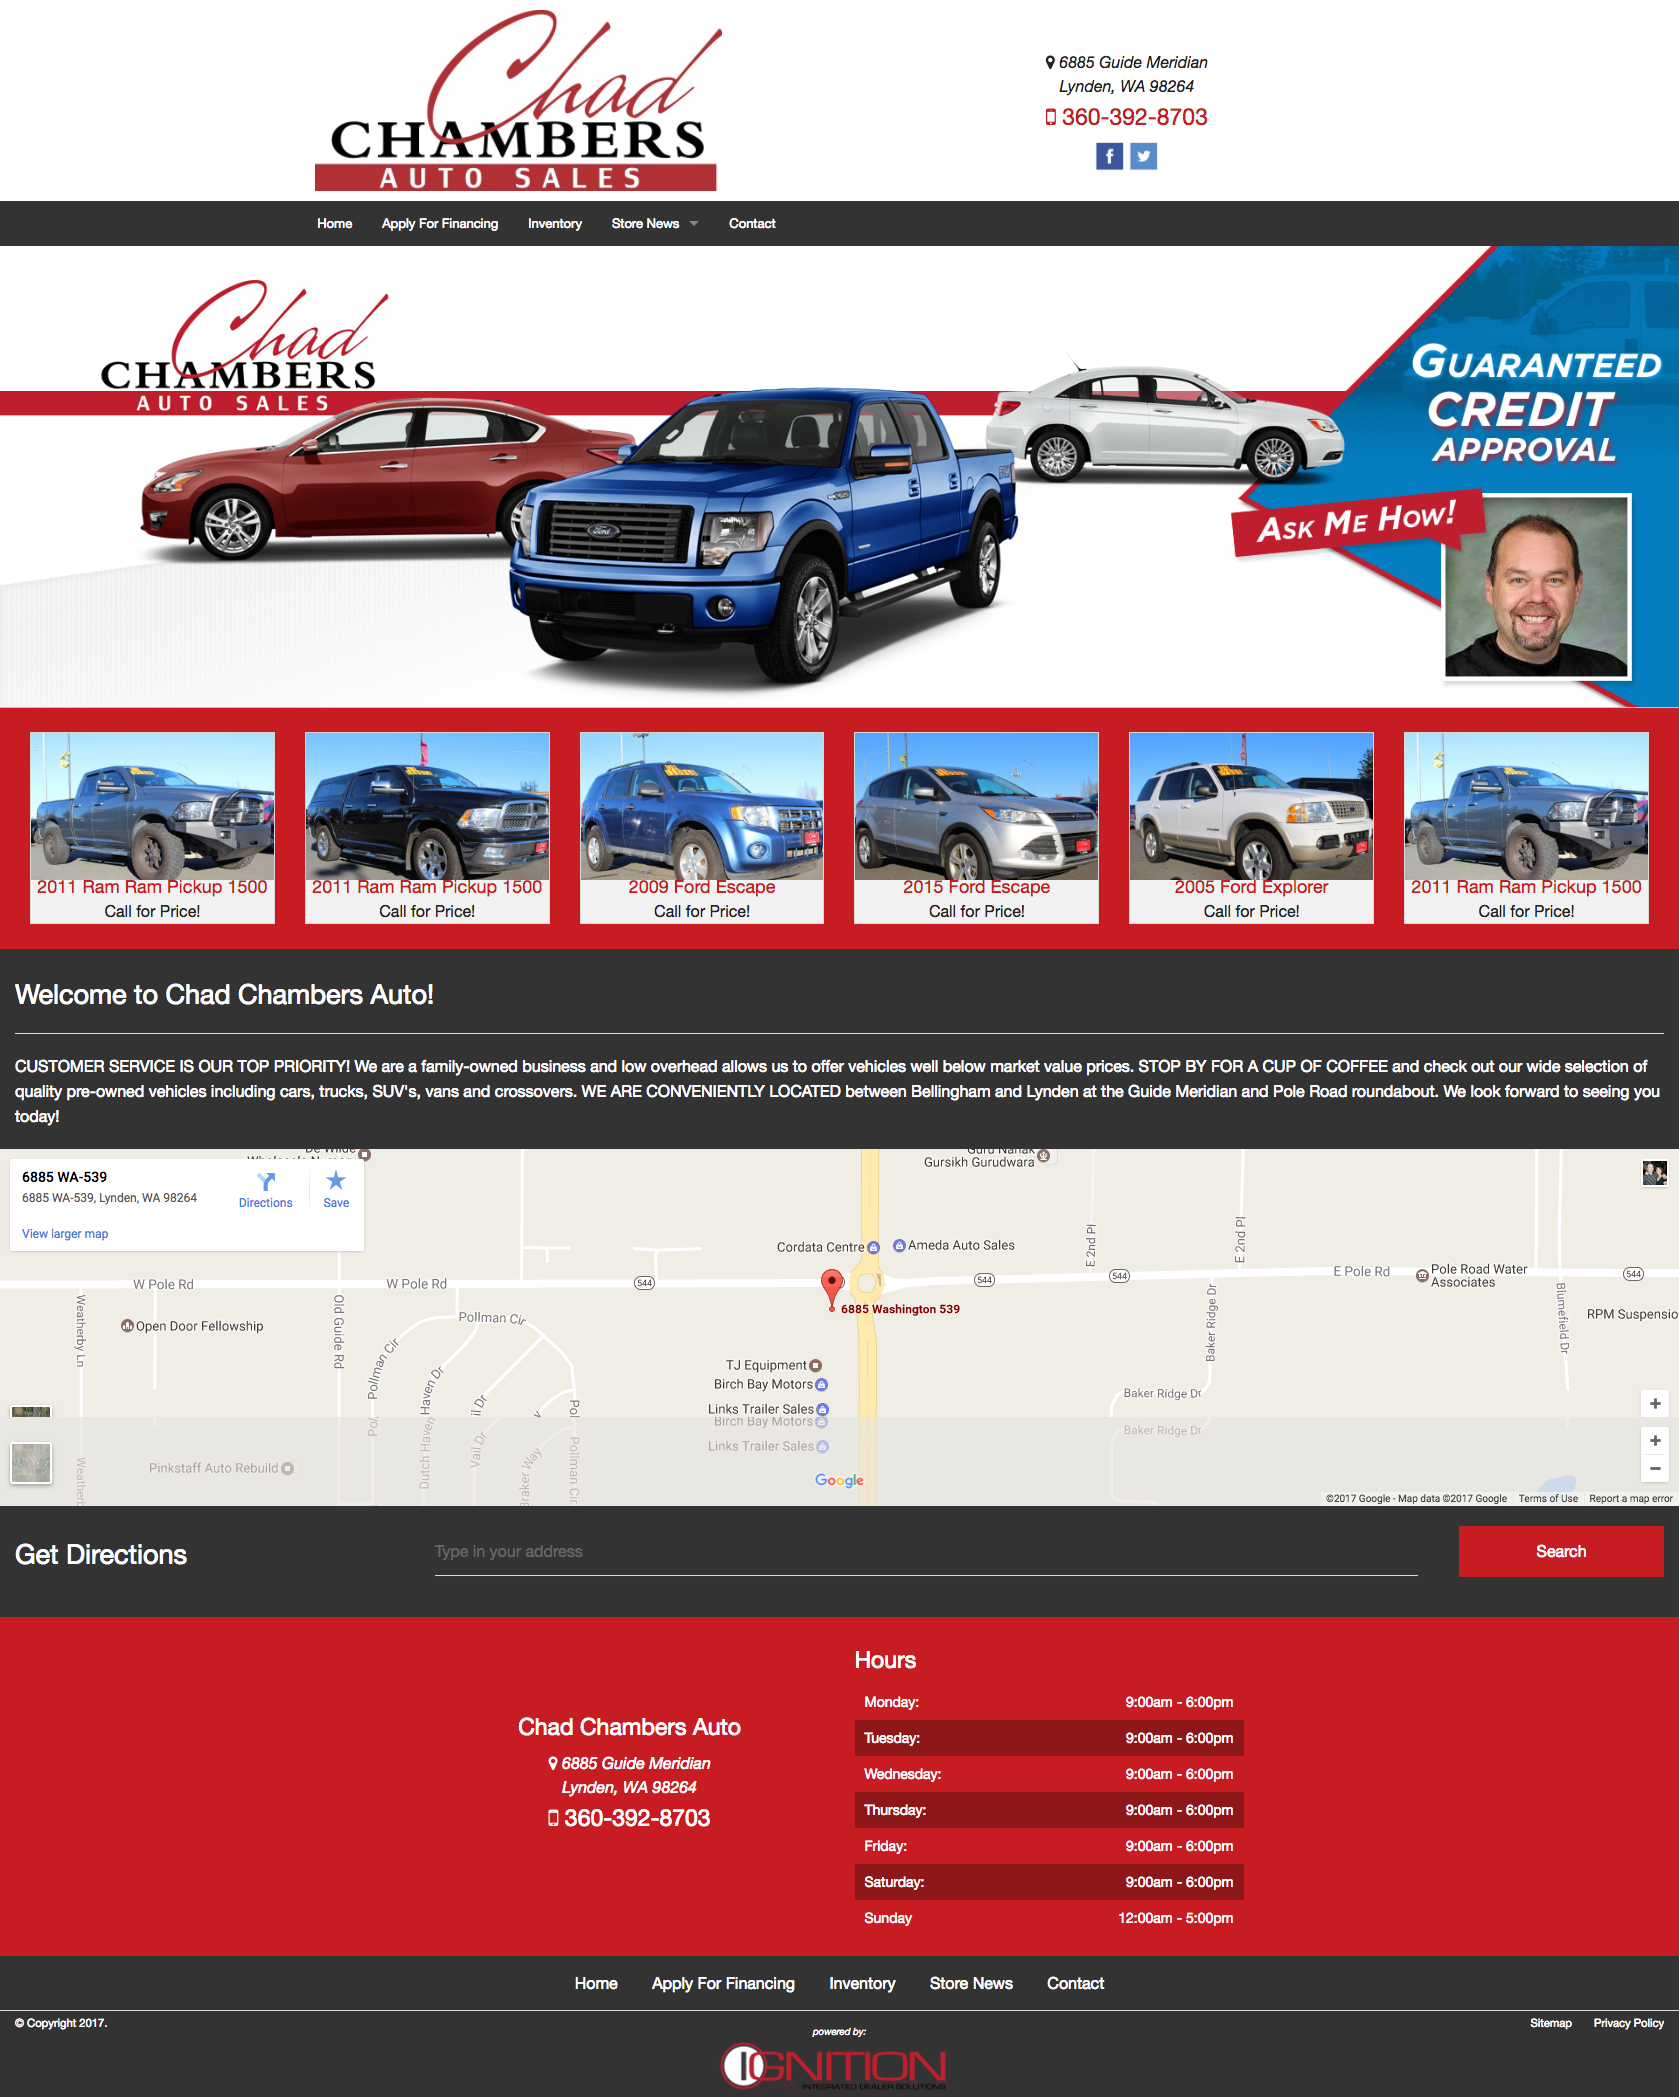 Responsive Automotive Dealer Website Templates - Ignition